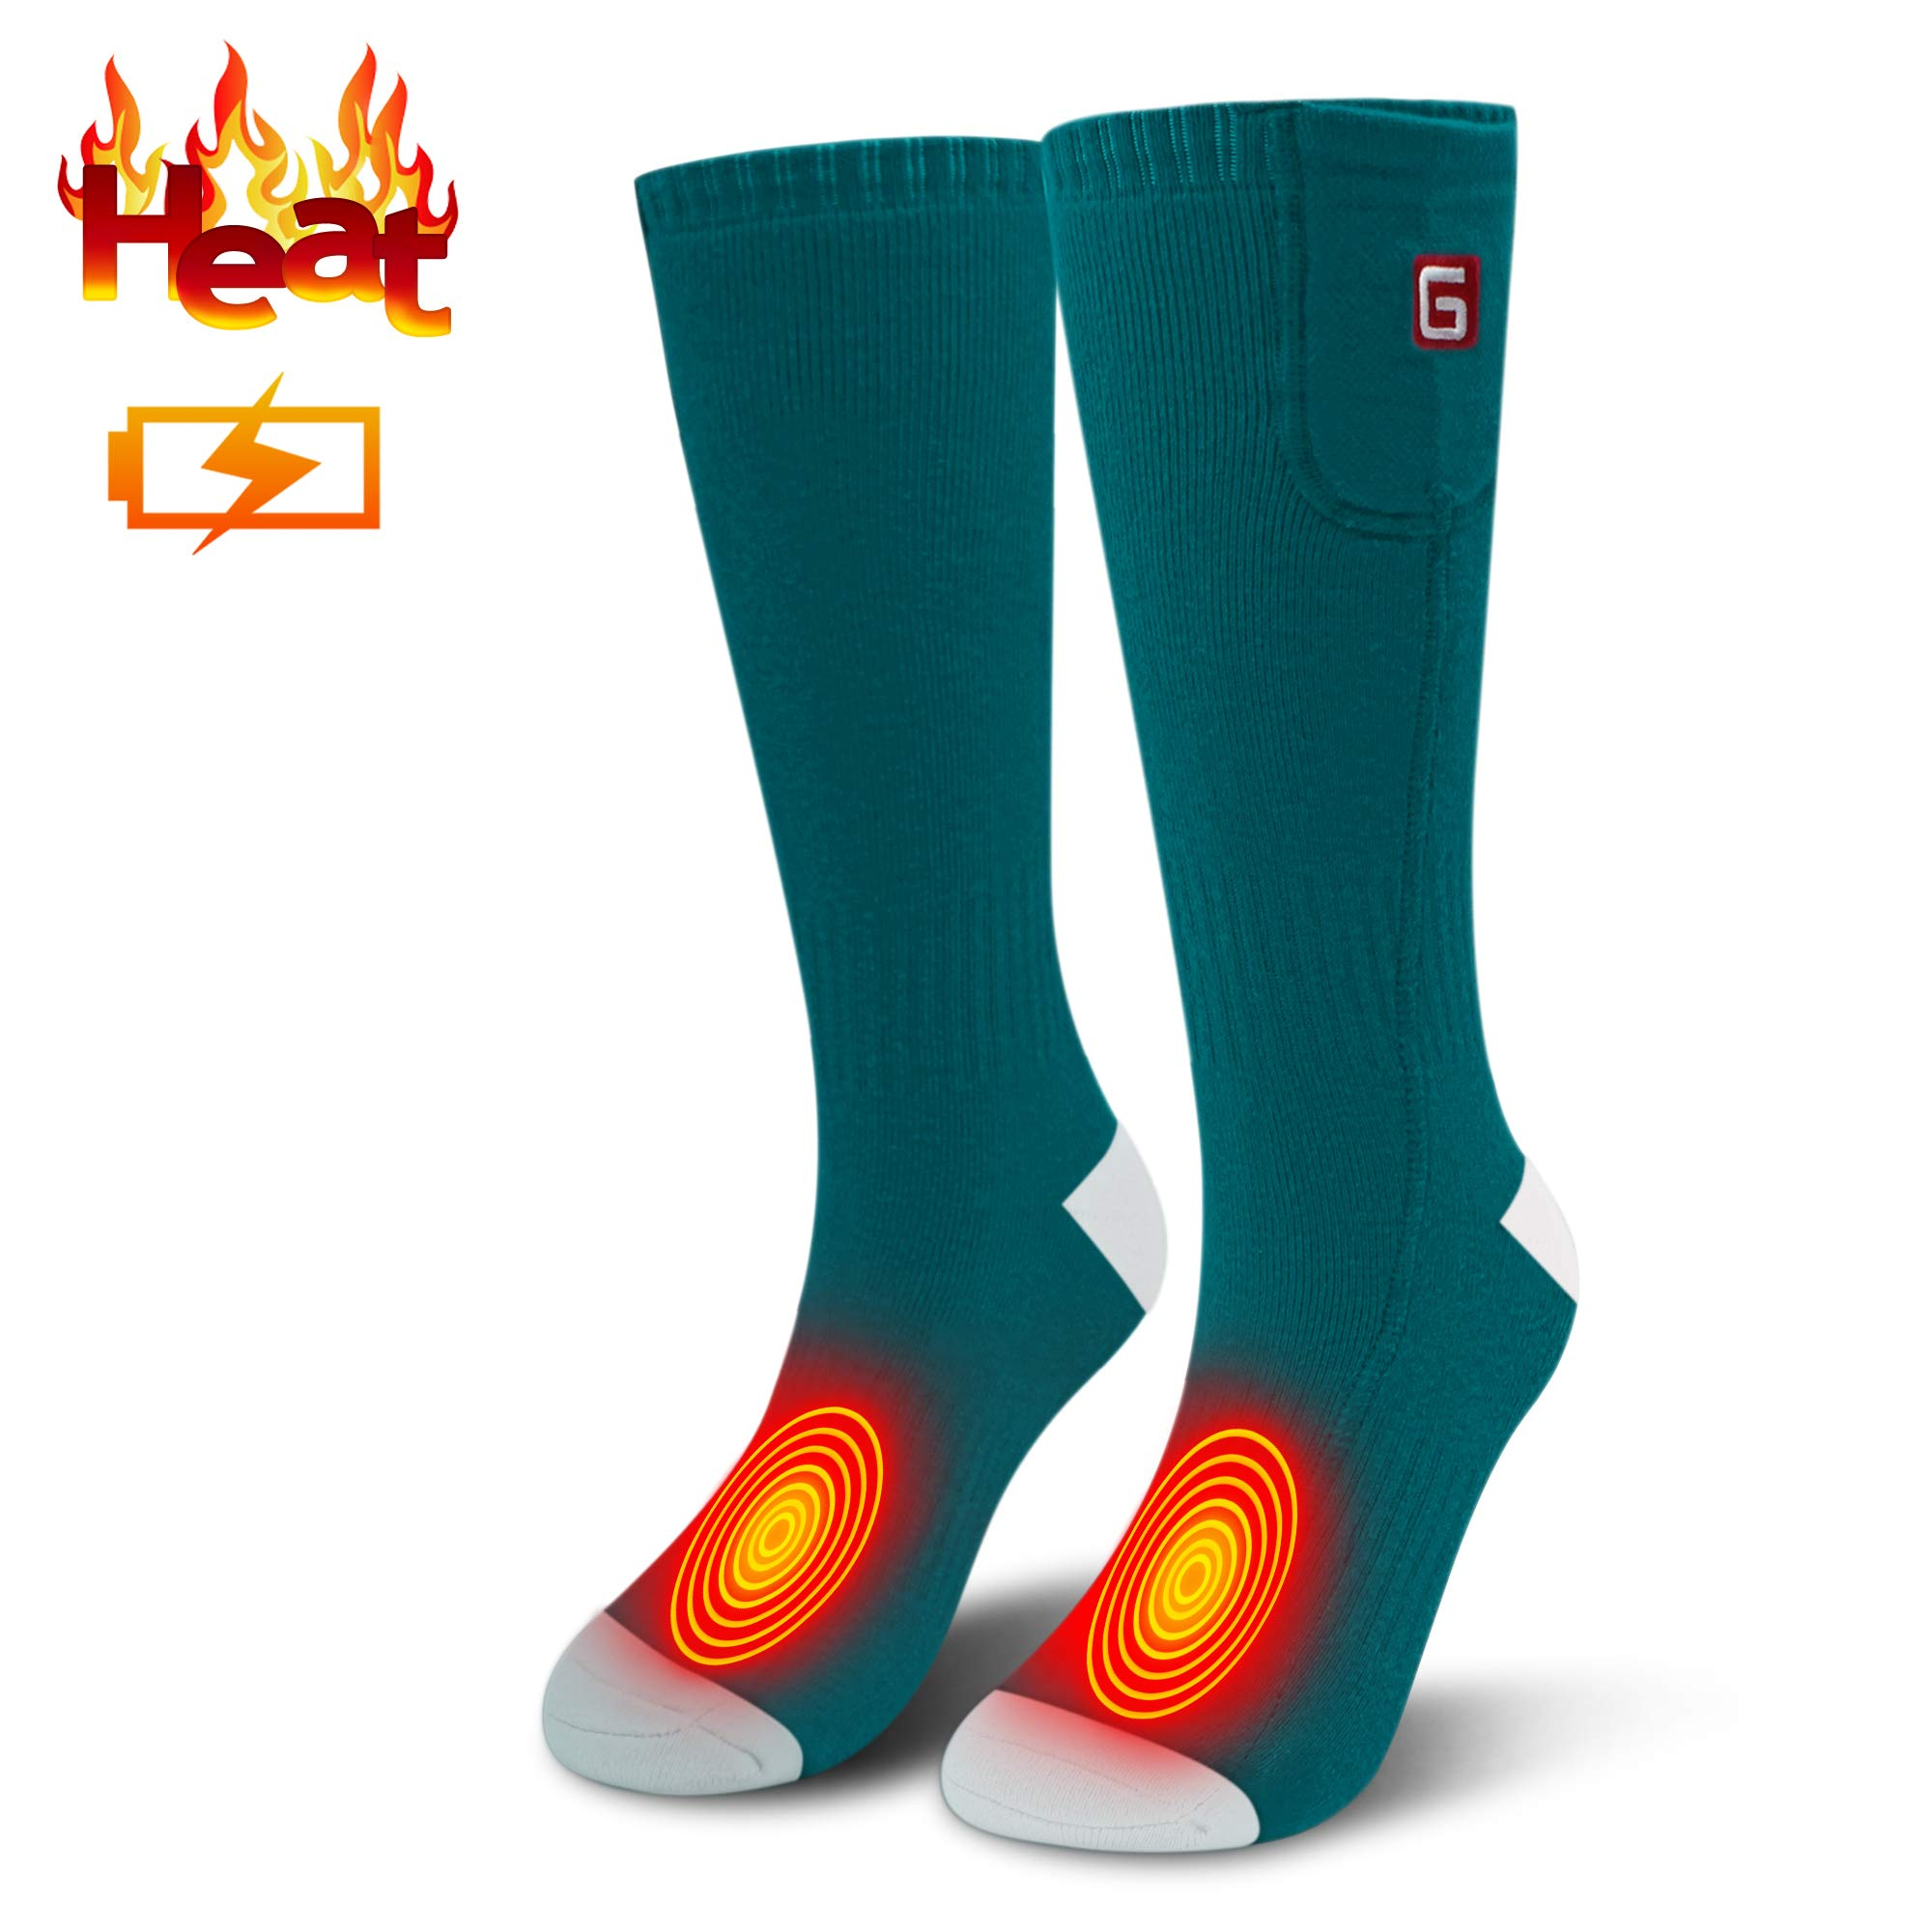 Electric Heated Socks for Men Thermal Socks Rechargeable Battery Foot Warmers Winter Ideal Presents for Men Women Perfect for Indoor Outdoor Sport Fishing/Hiking/Sleeping (Green White) by MMlove